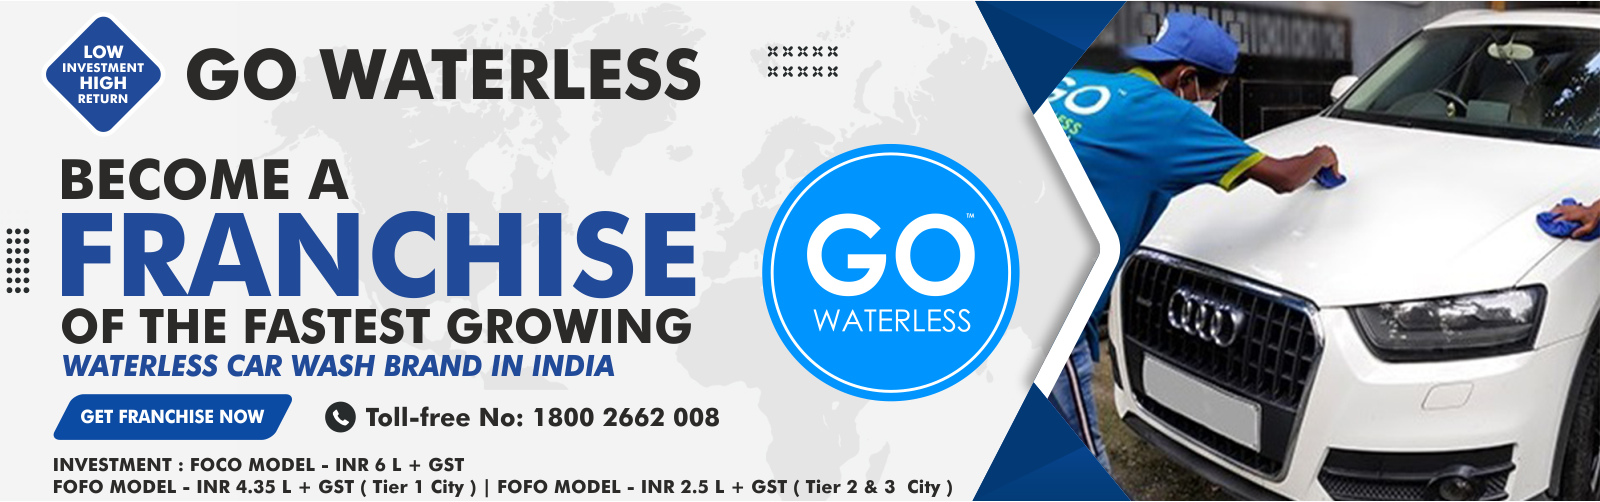 admin/uploads/brand_registration/Go Waterless (Fastest Growing Waterless Car Detailing Brand In India)